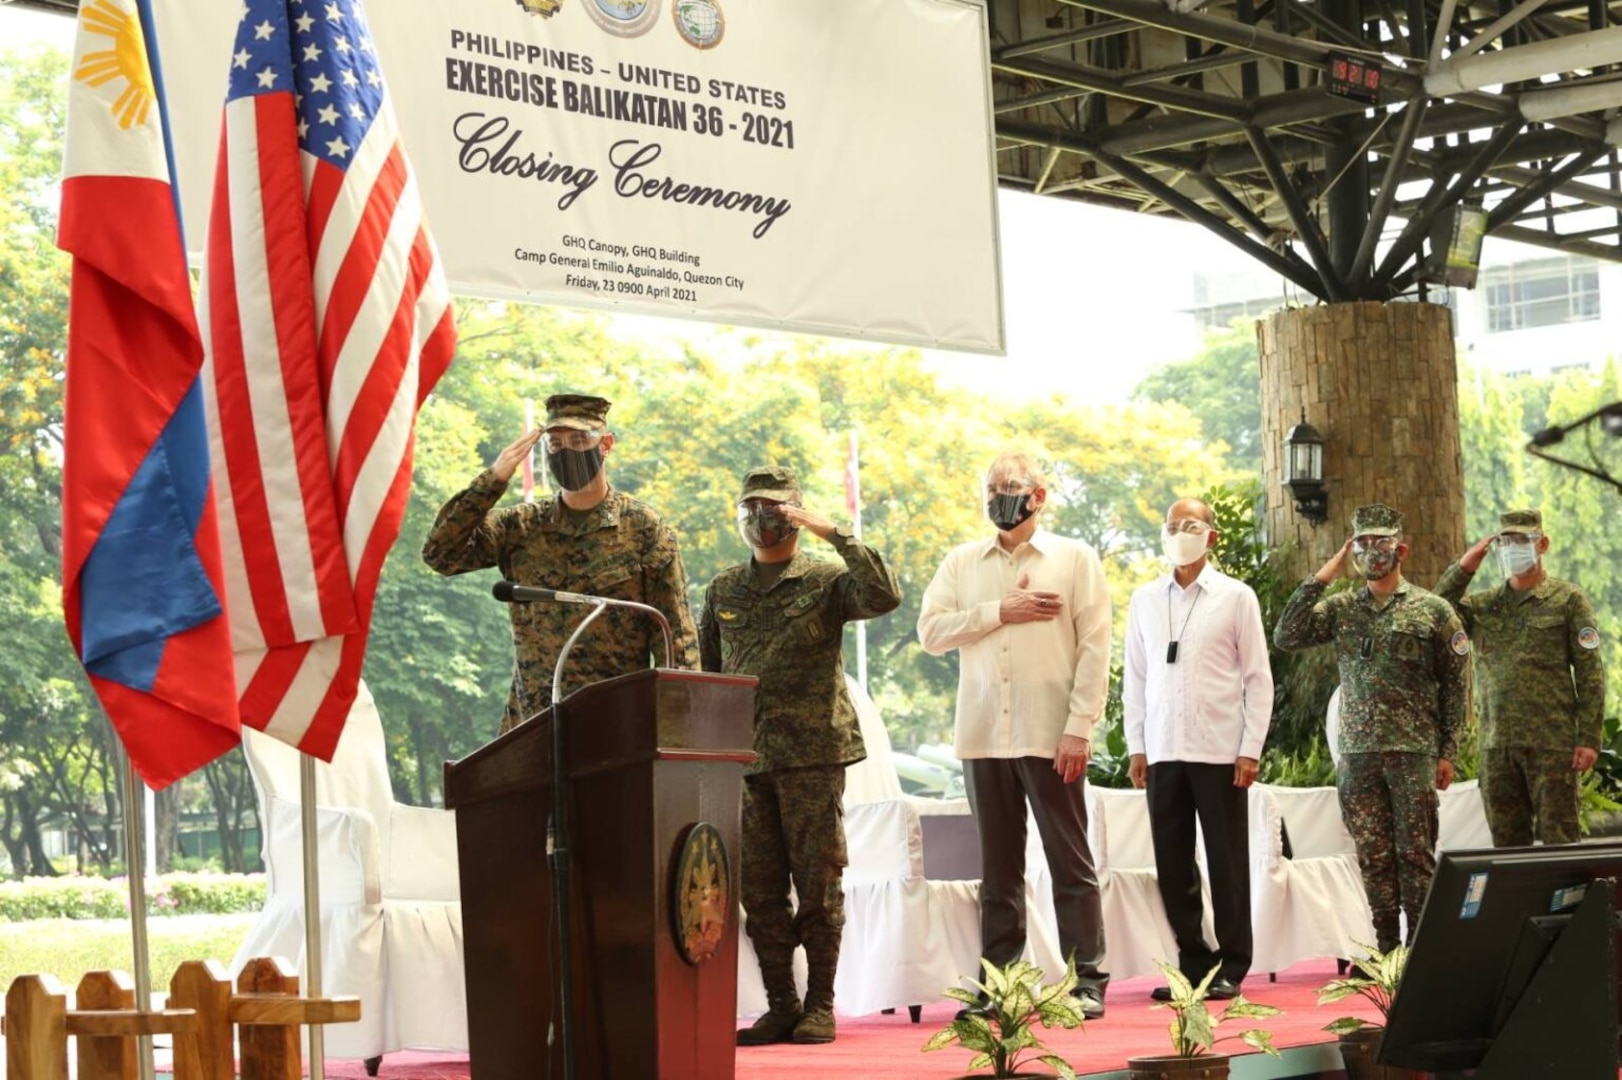 U.S. and Philippine Forces Conclude 36th Balikatan Exercise